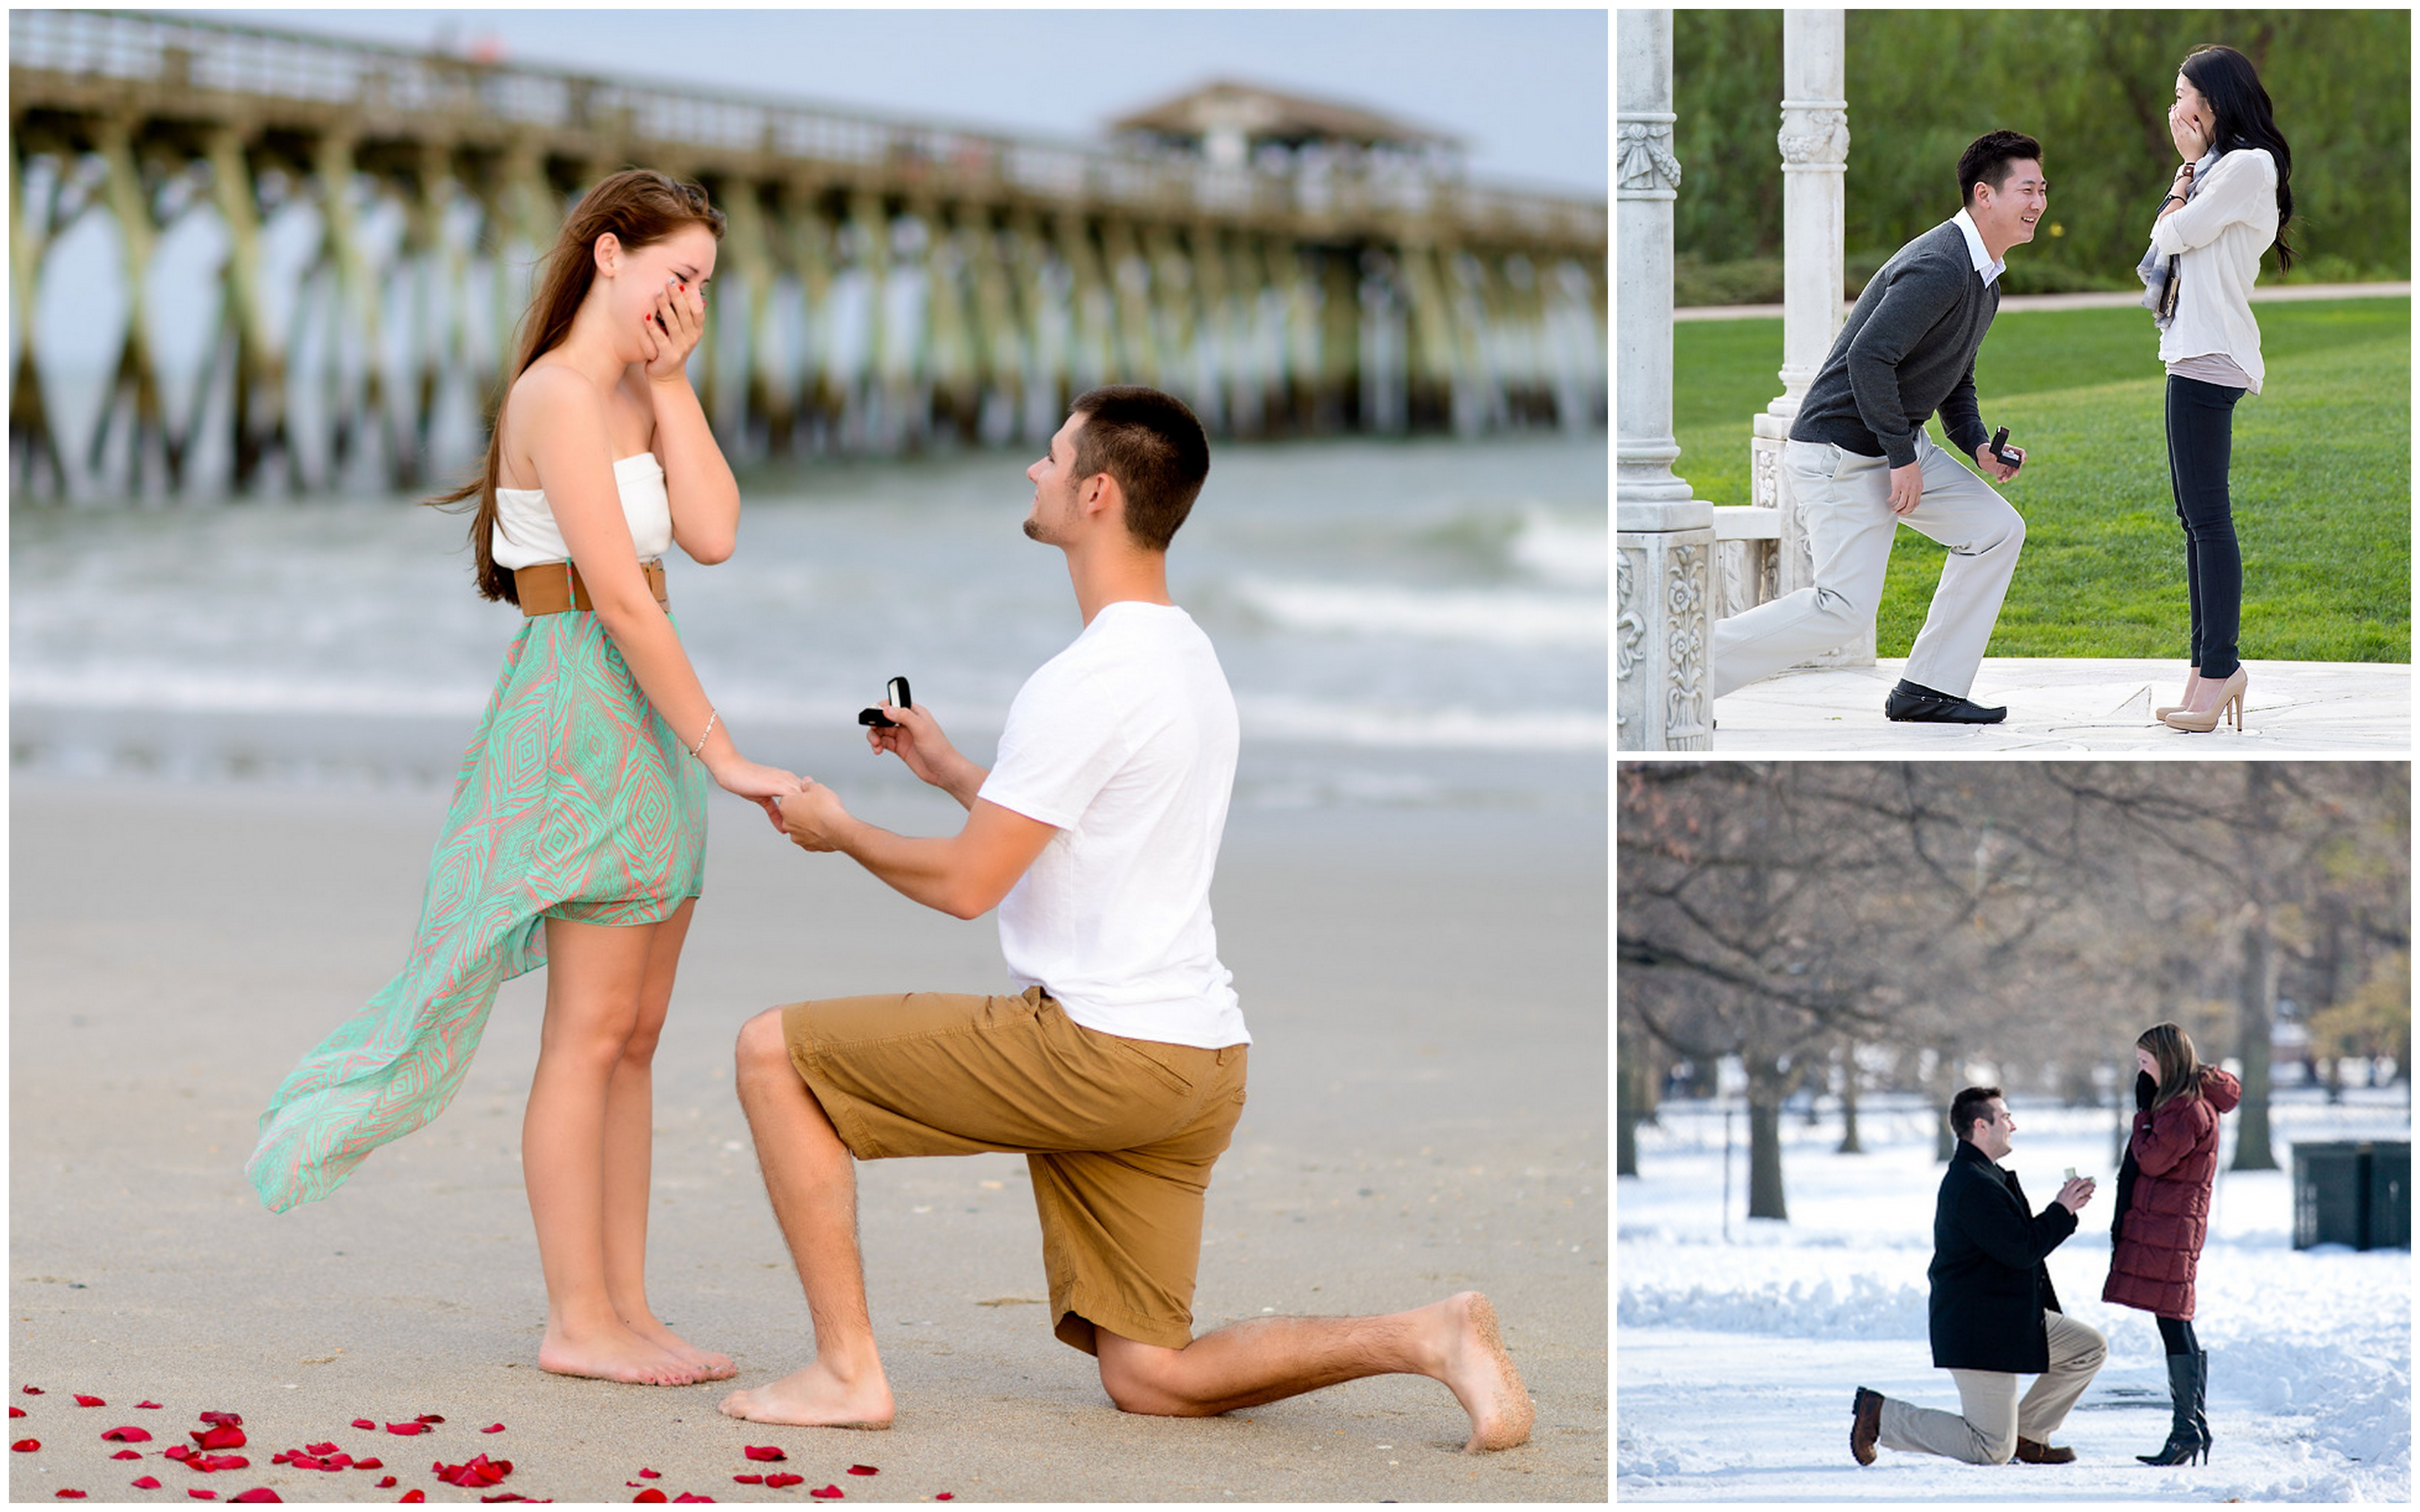 winter engagement photo ideas chicago - Happy National Proposal Day Proposal Ideas Blog